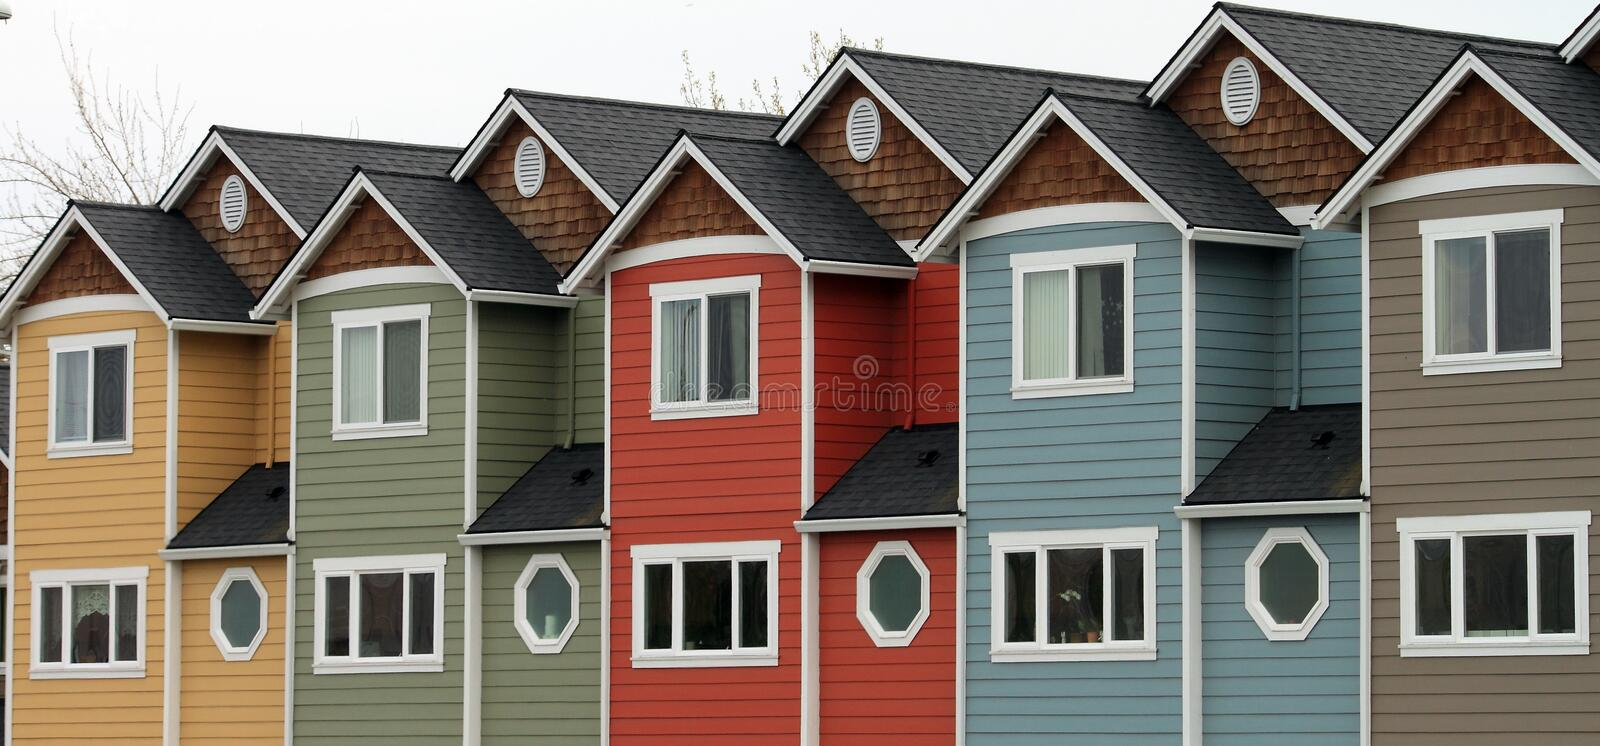 Line of Homes. A line of colorful attached identical modern homes with lots of windows